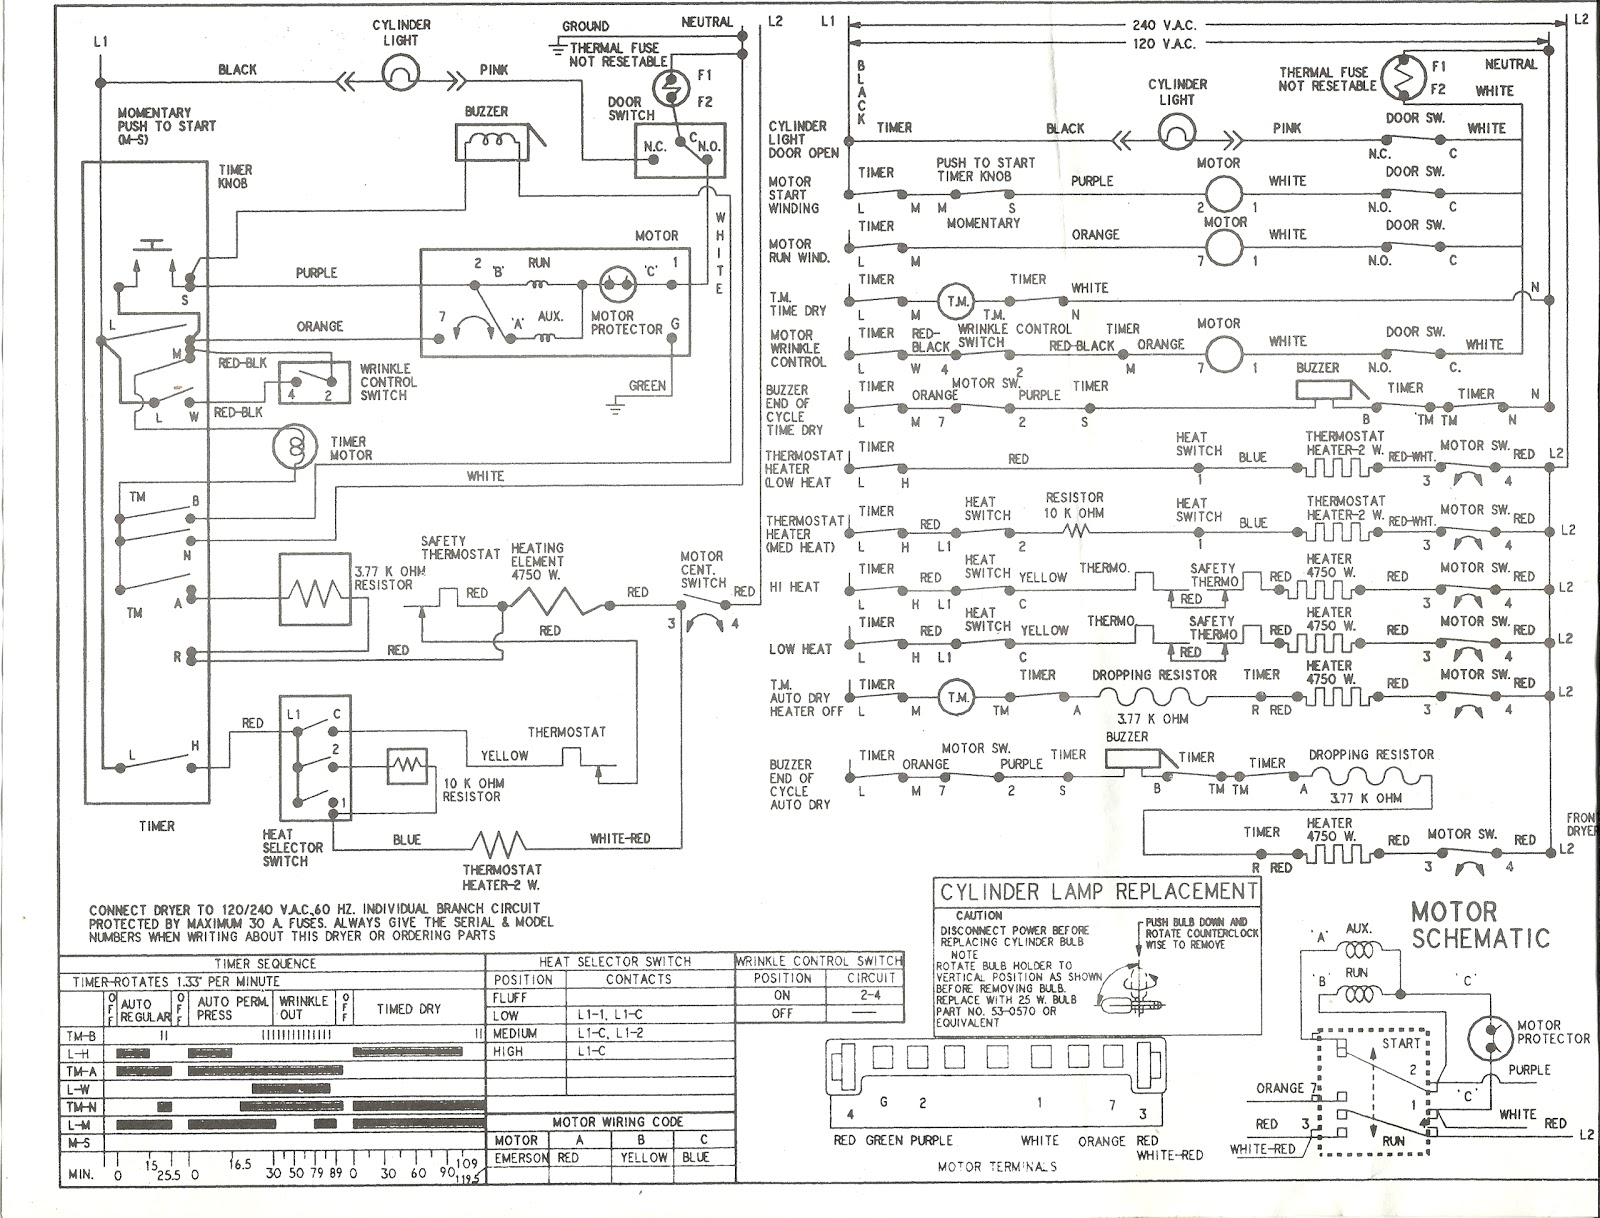 appliance talk kenmore series electric dryer wiring diagram schematic rh blog applianceoutletservice com GE Refrigerator Wiring Diagram Dryer Wiring